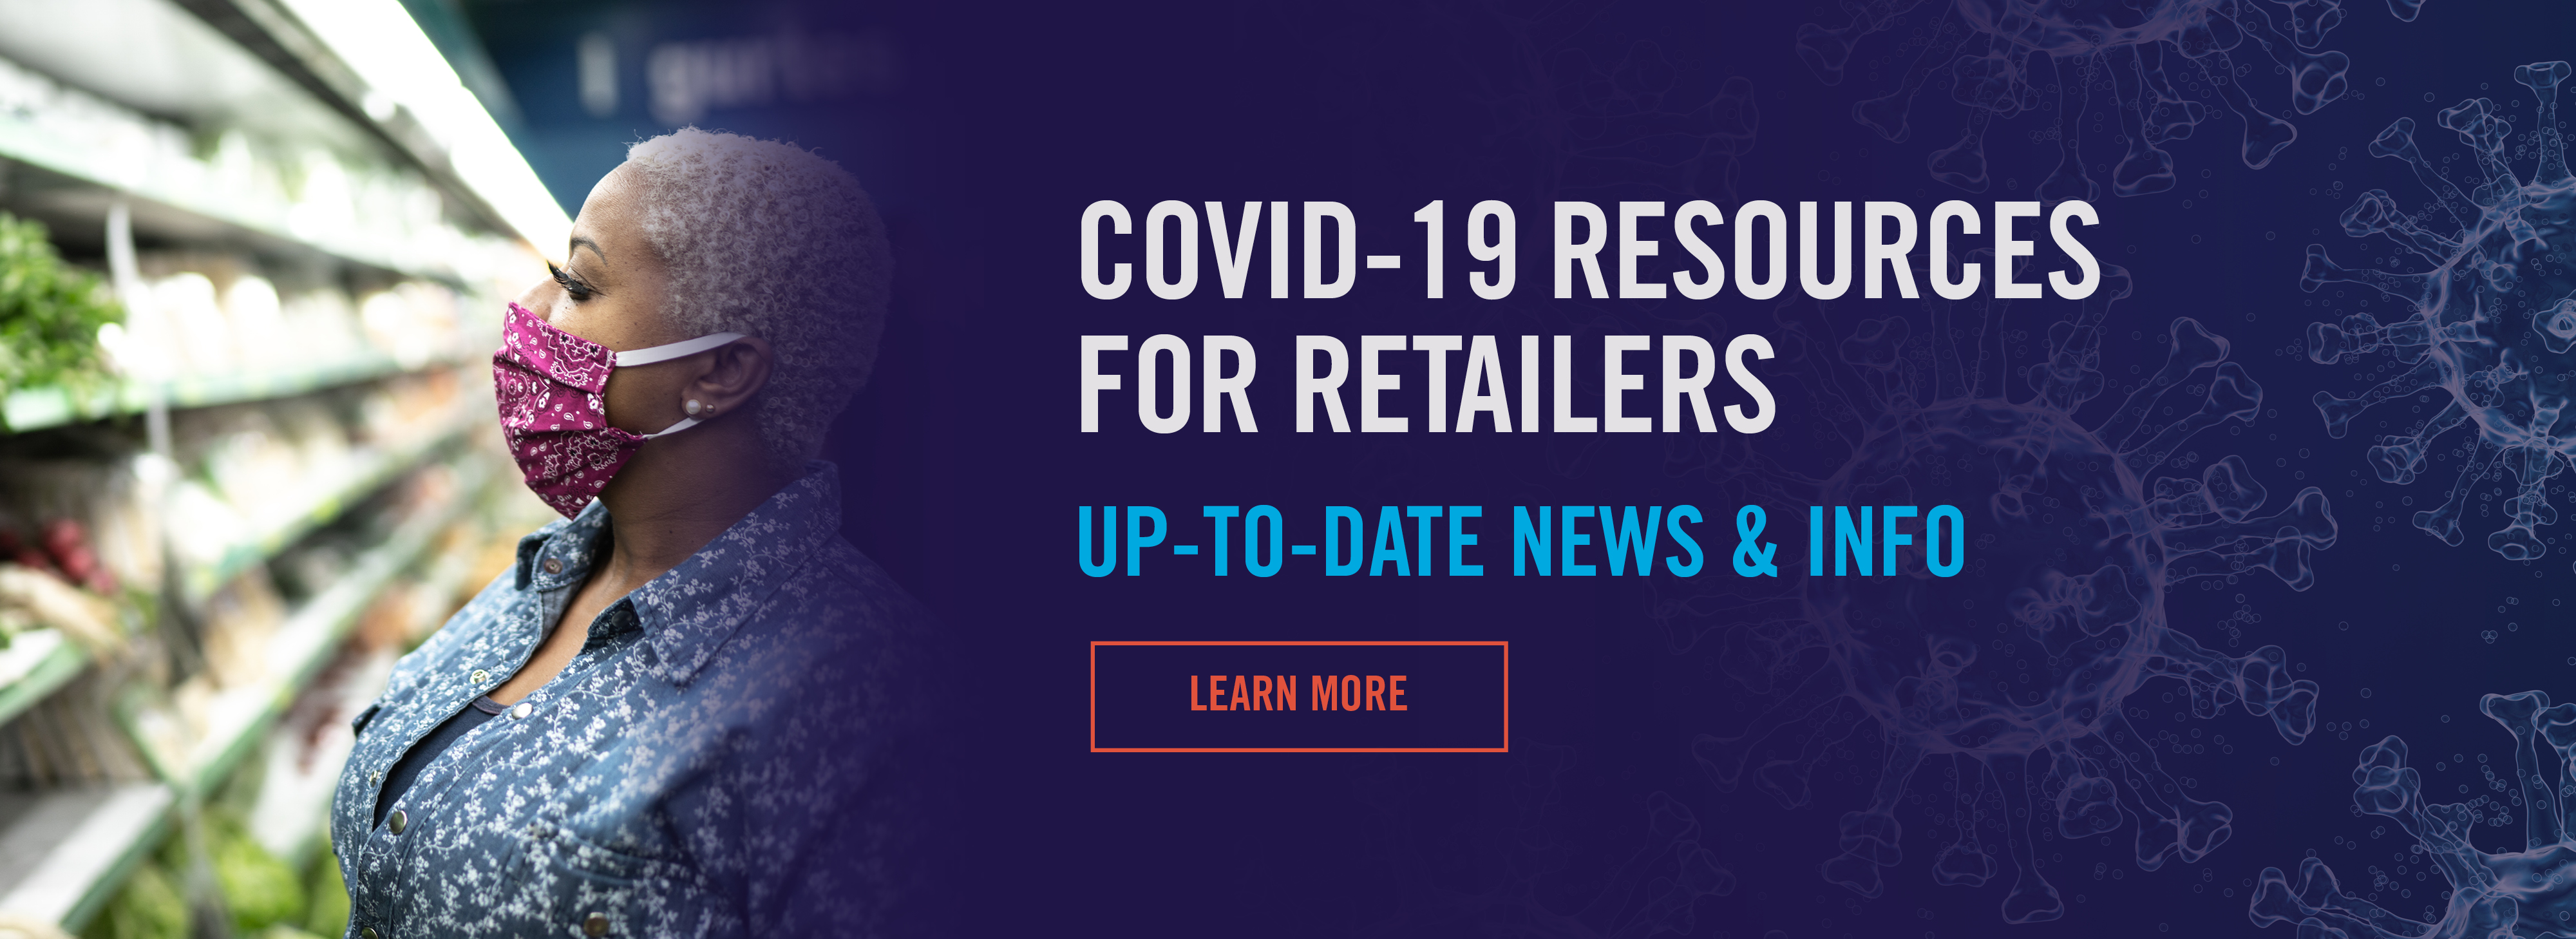 COVID-19 Resources for Retailers